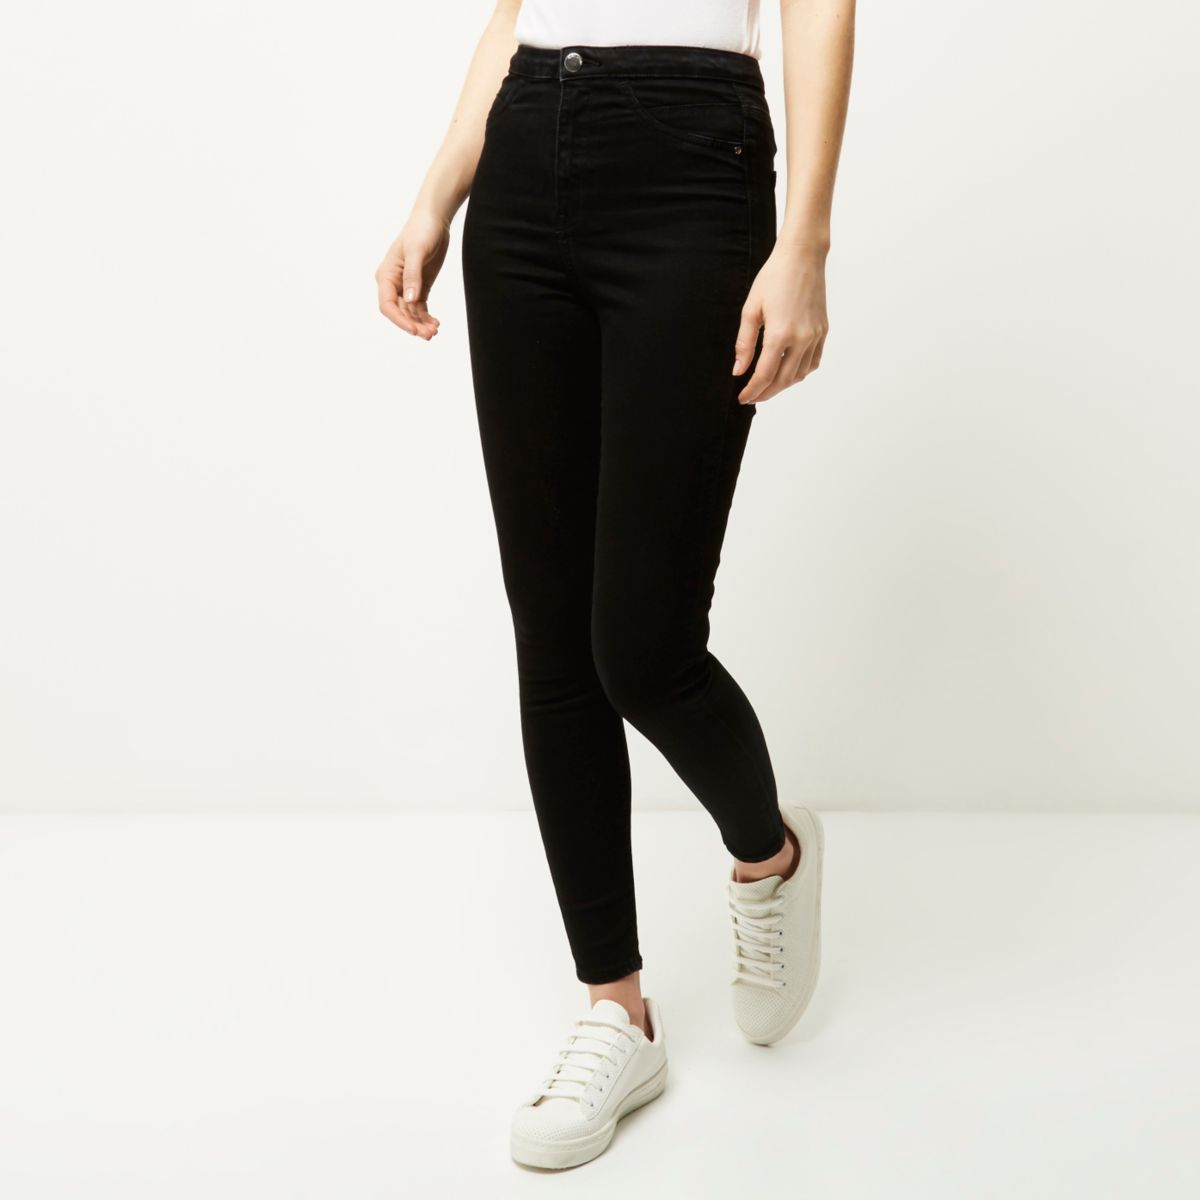 Black high waisted going out jeggings